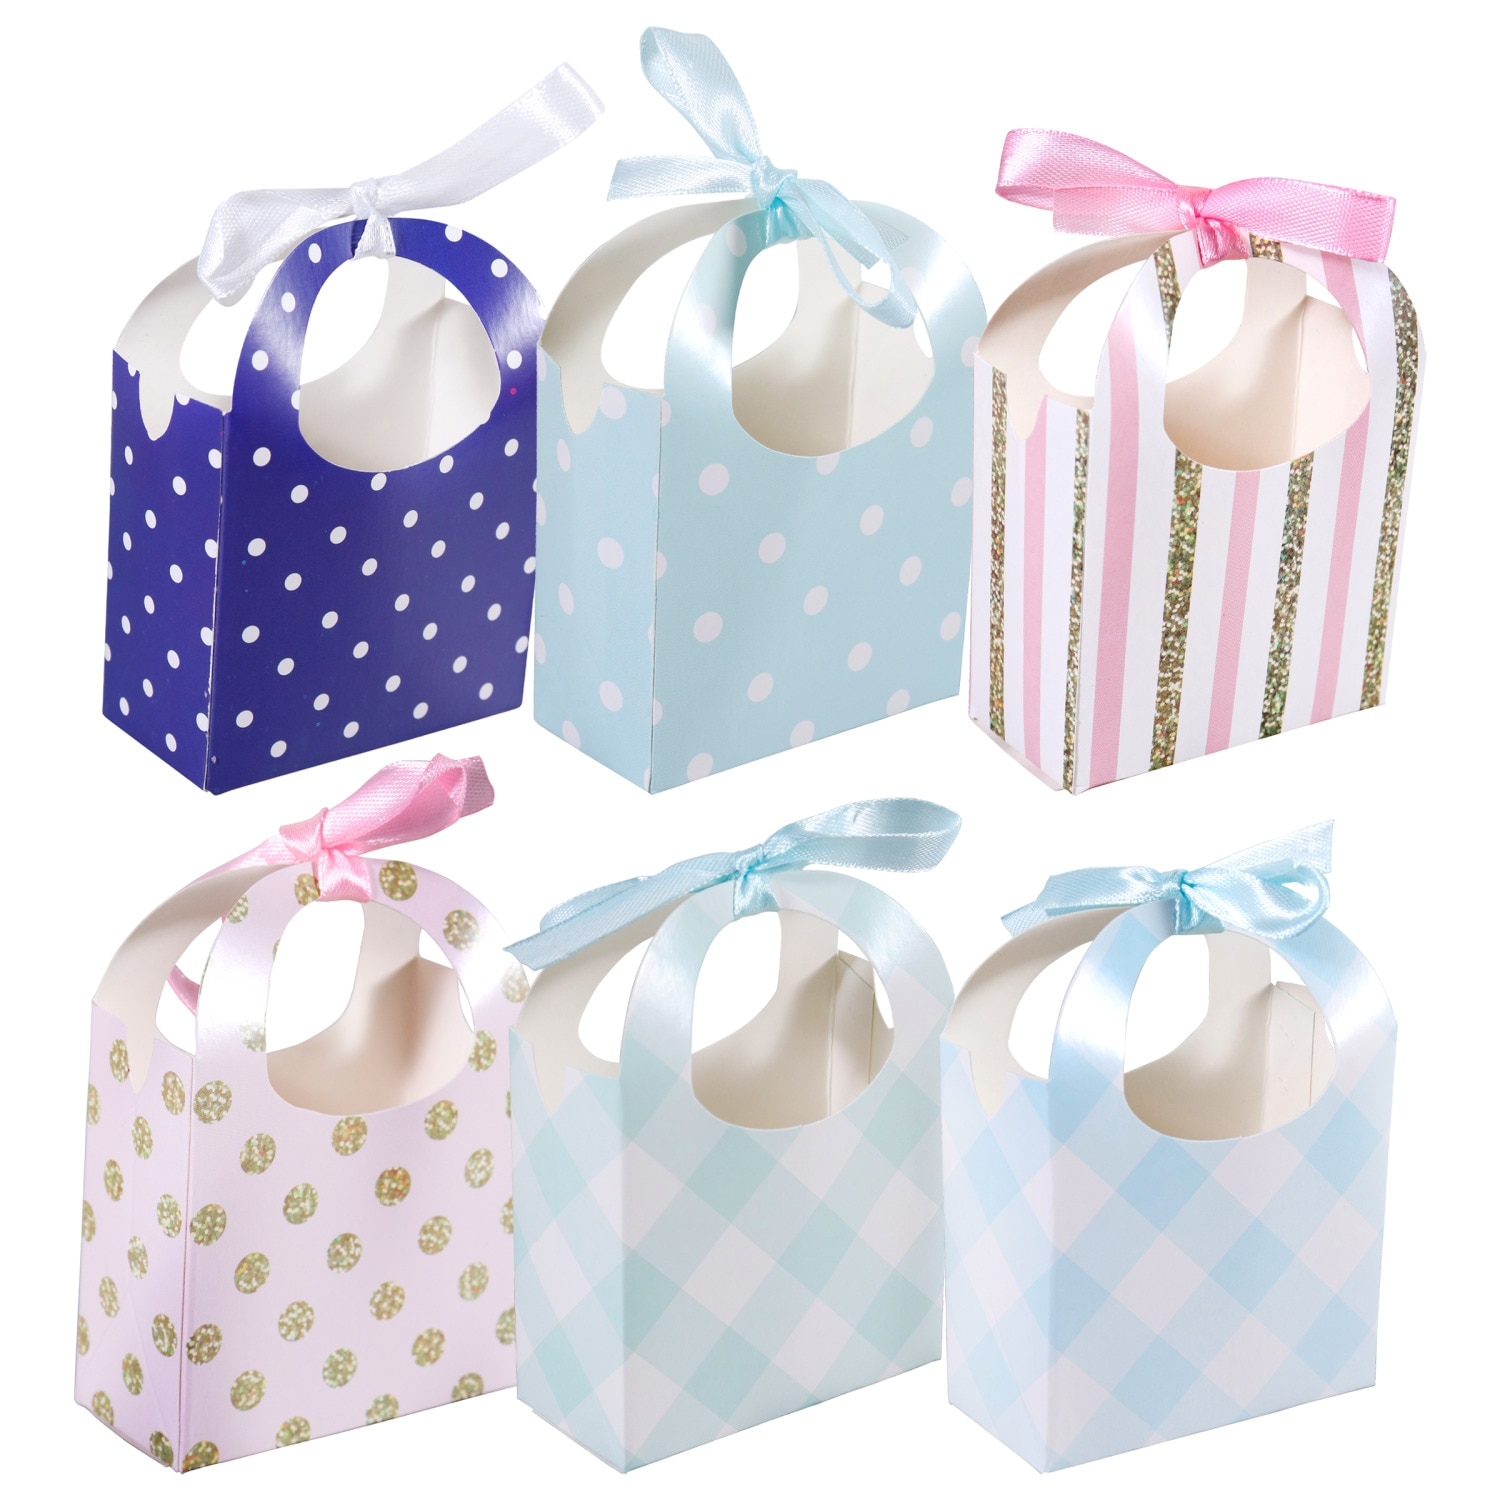 Small Pastel Colored Baby Favor Boxes, 10-ct. Packs